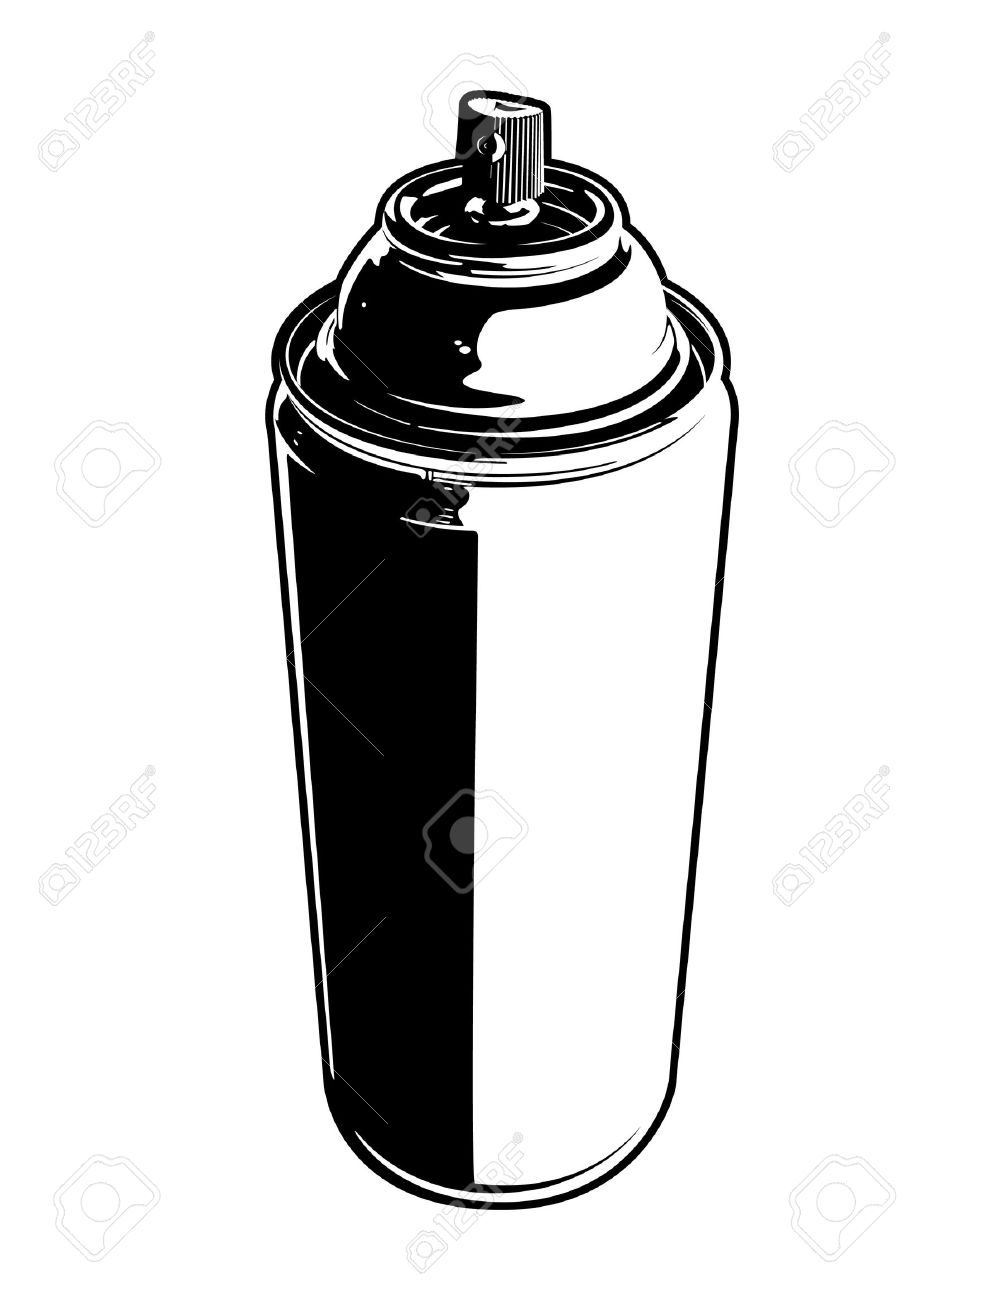 can of spray paint royalty free cliparts vectors and stock rh 123rf com spray paint vector pack spray paint vector free download